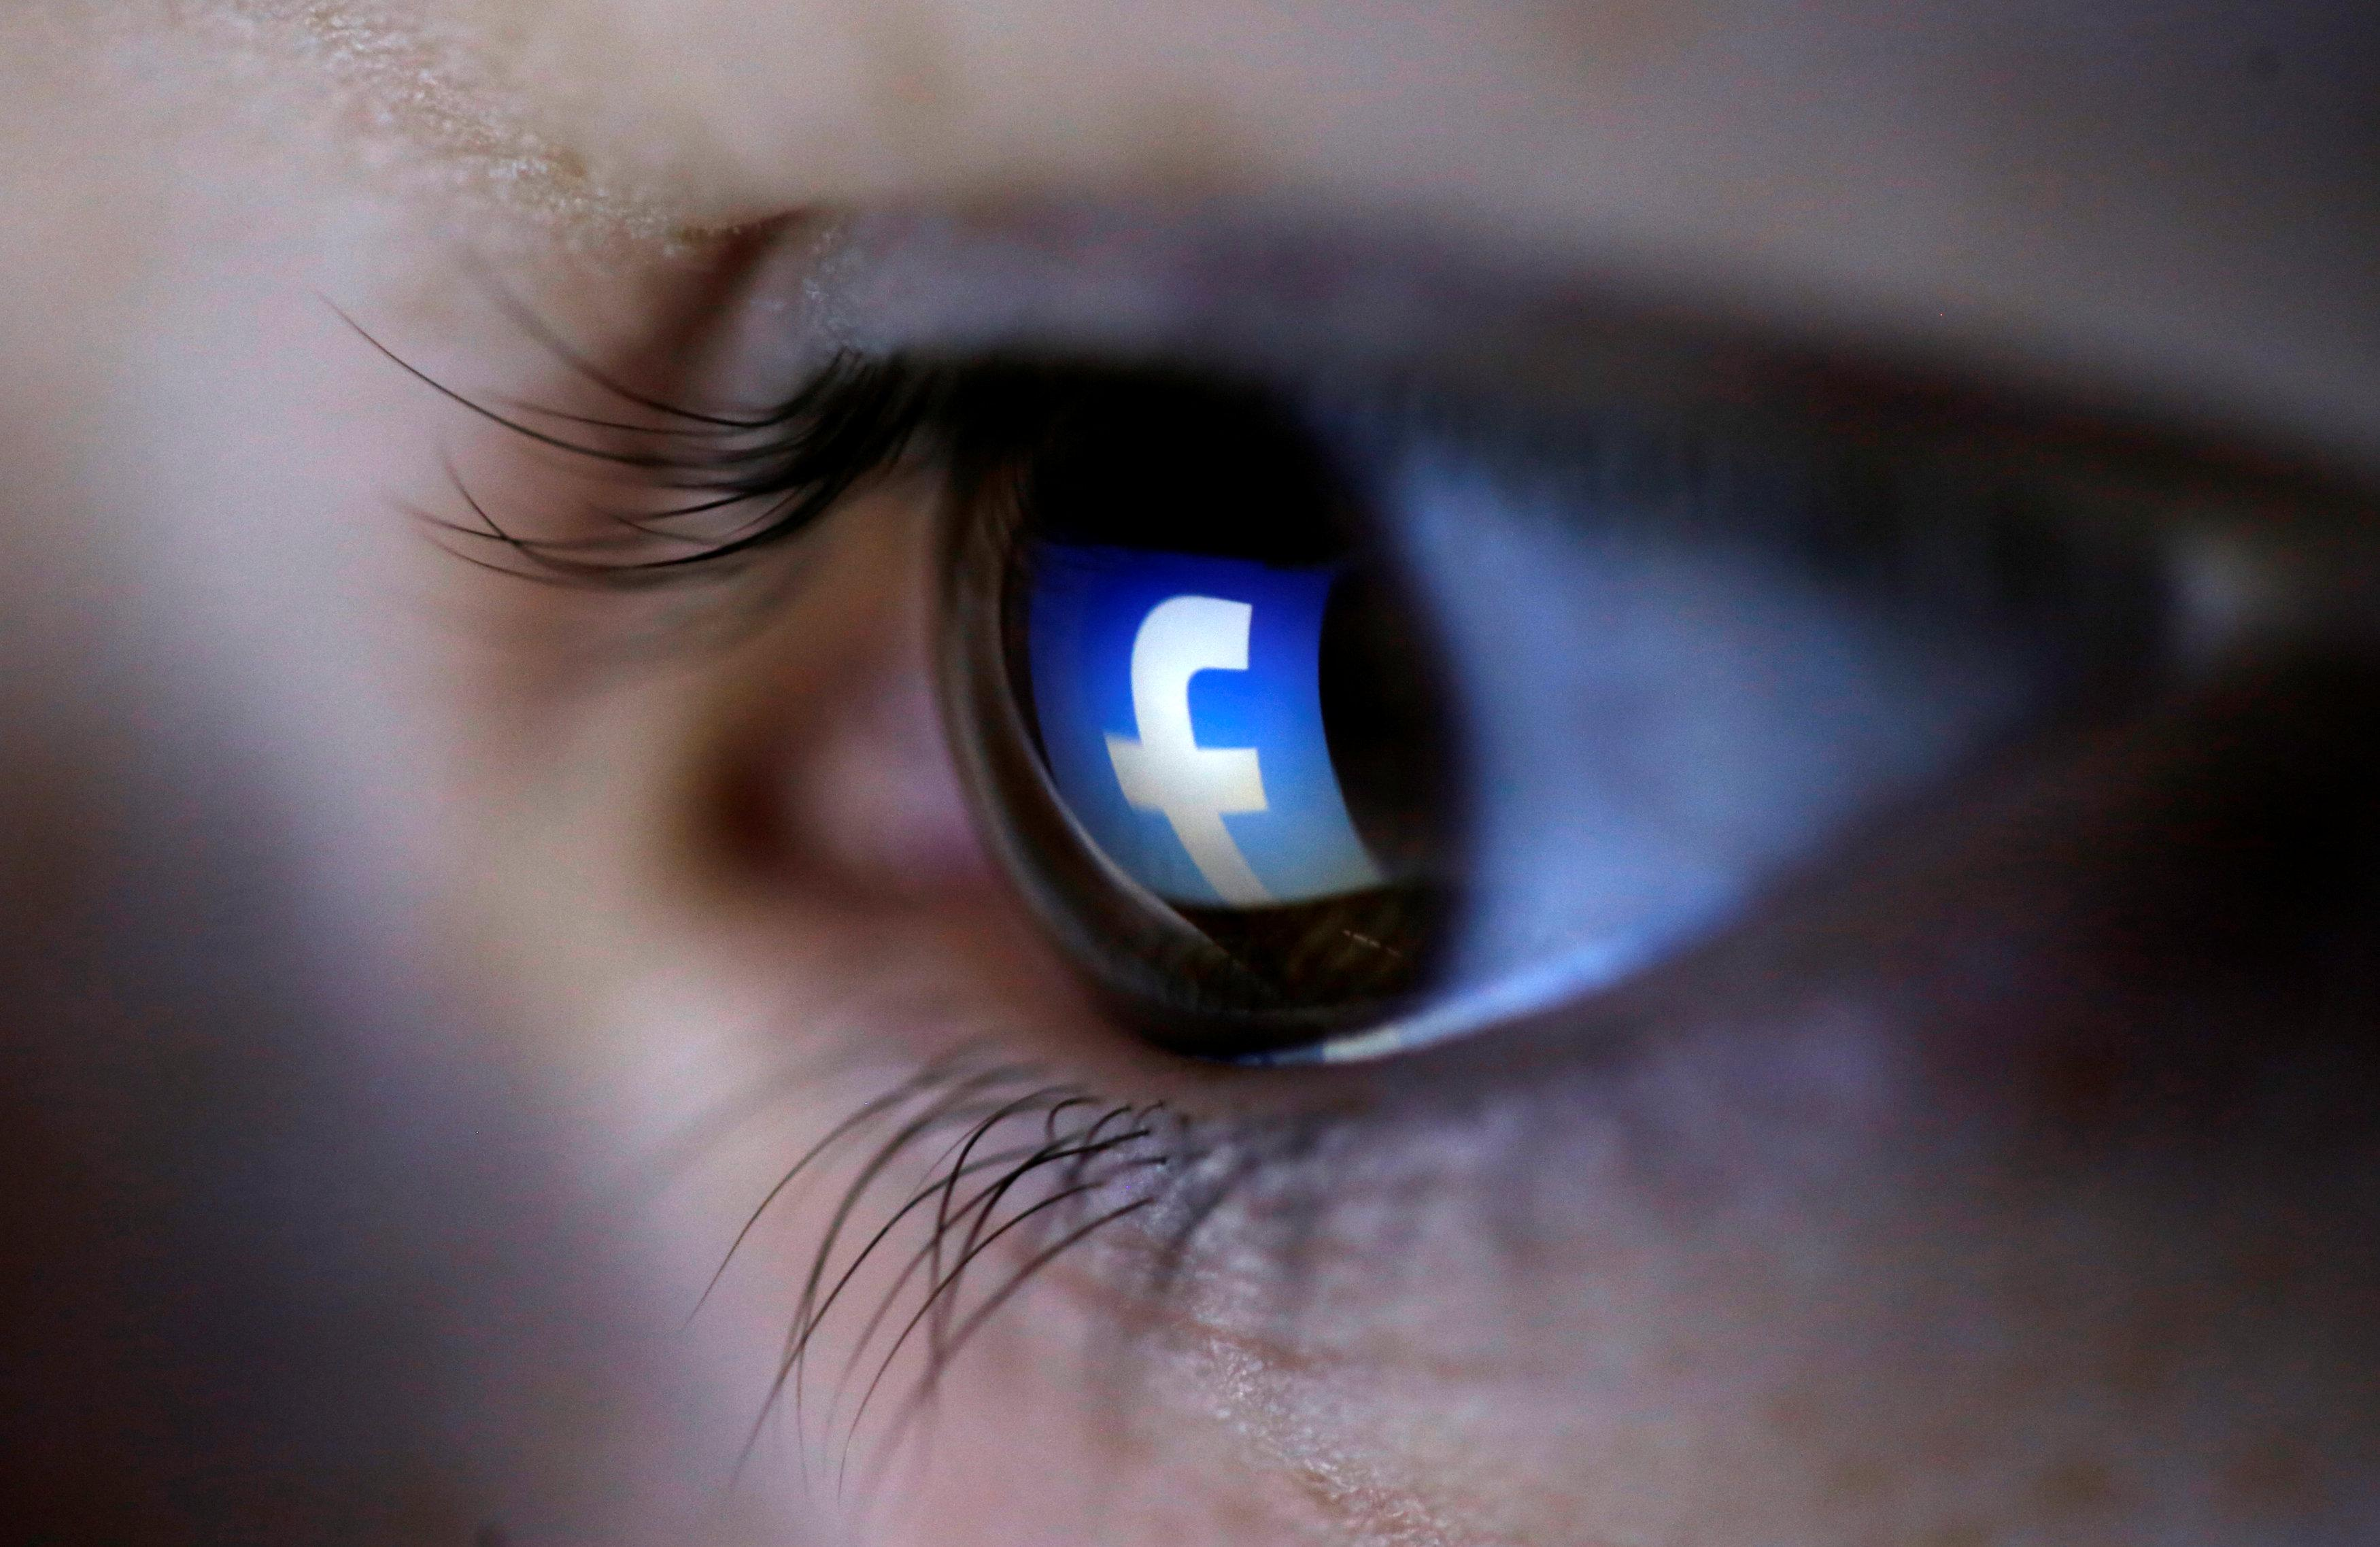 A Facebook logo reflected in a person's eye. REUTERS/Dado Ruvic